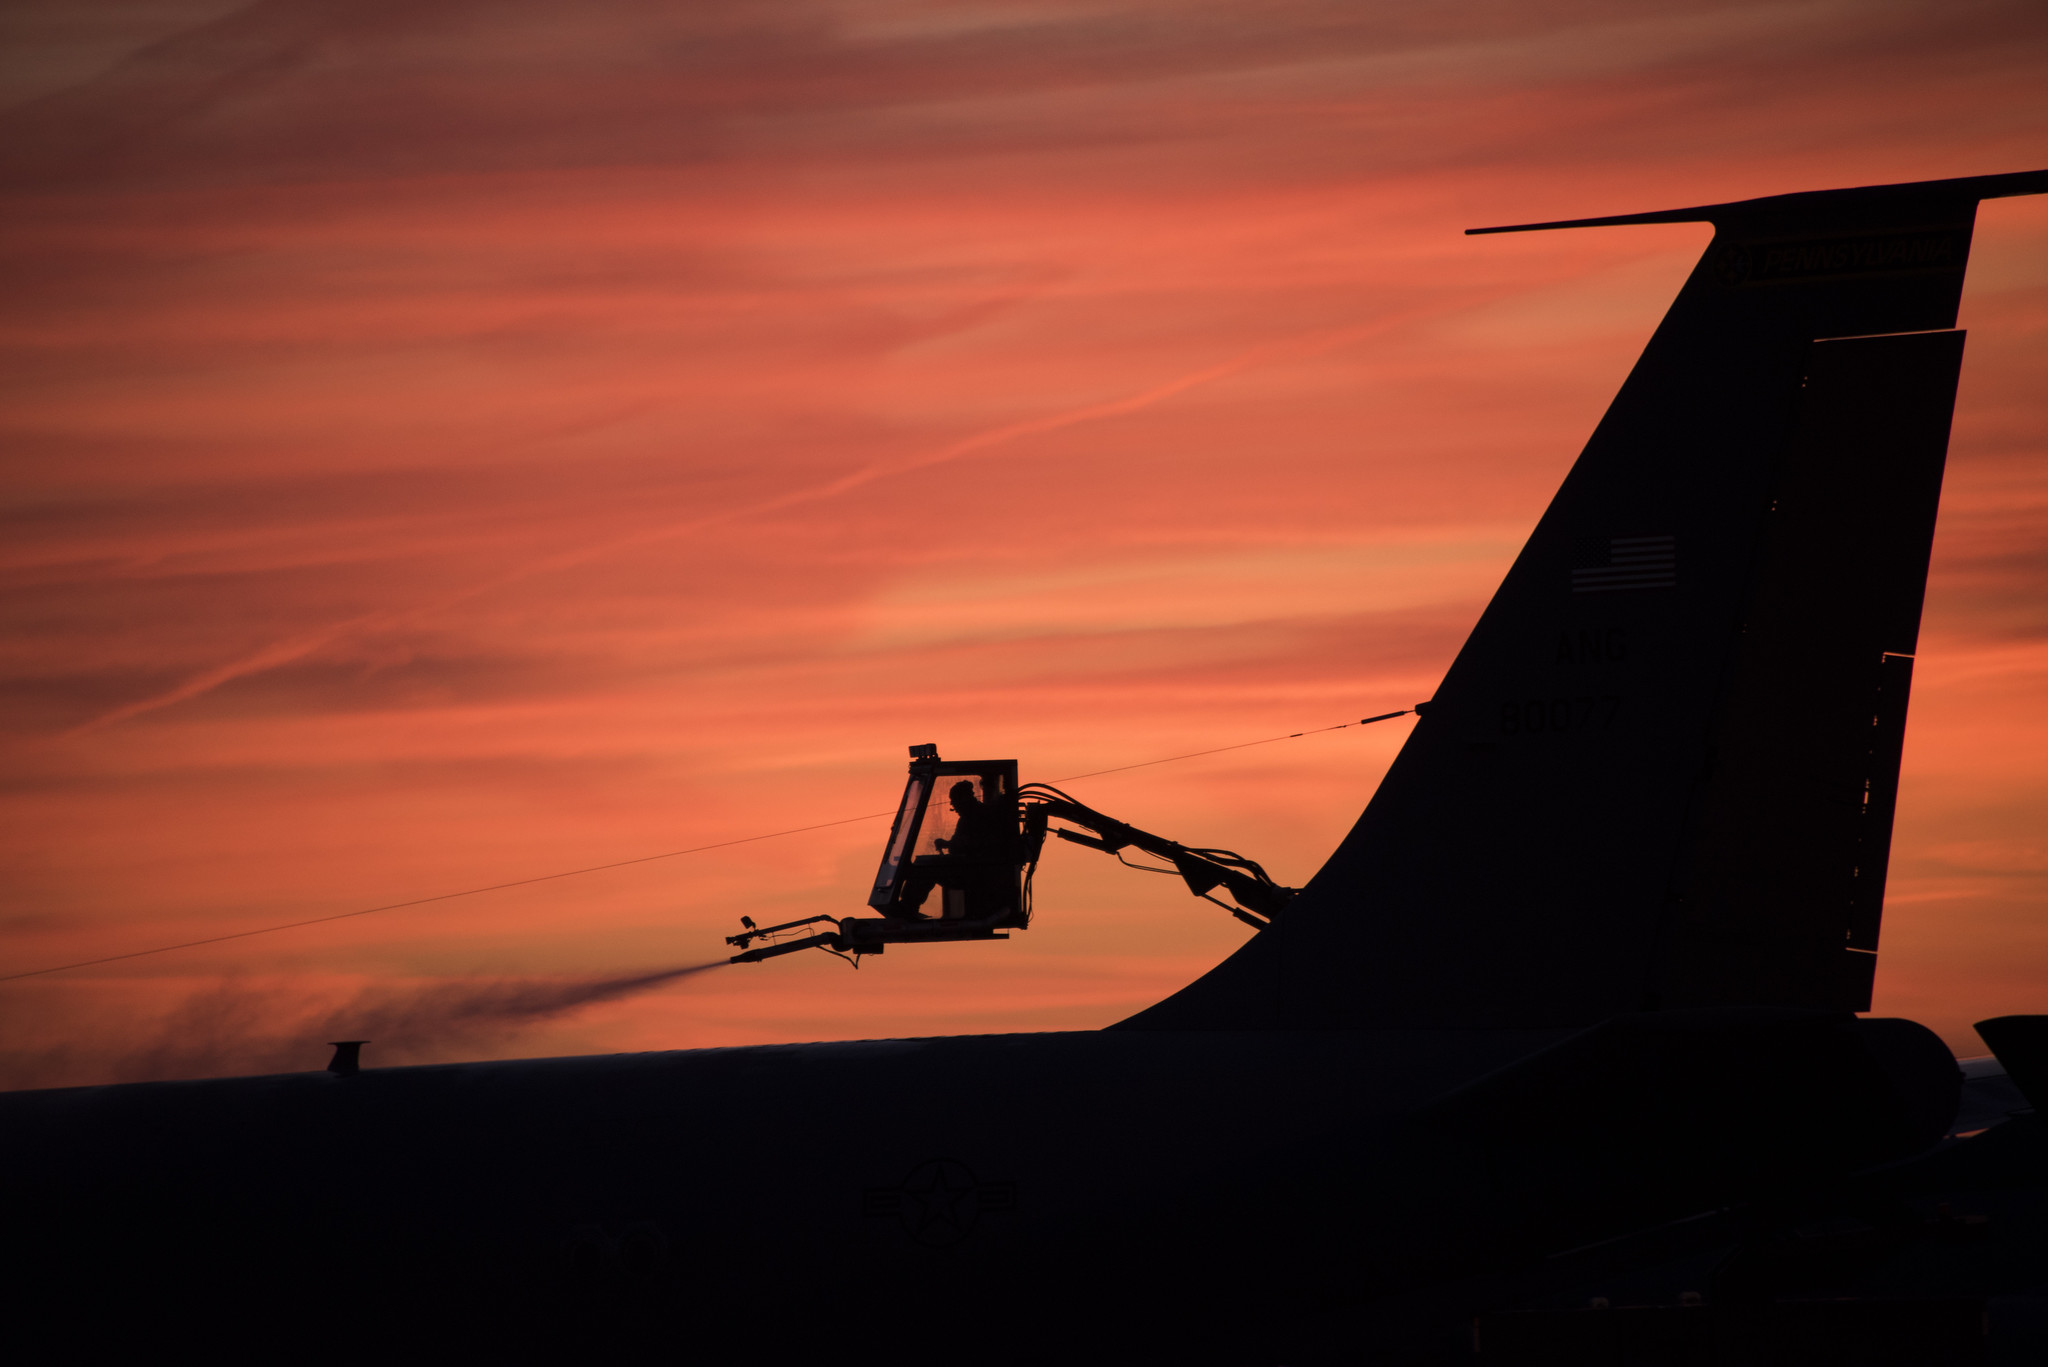 Tech. Sgt. Joshua Nordeen, a Pennsylvania Air National Guardsman, deices an aircraft early in the morning as the sun rises in Pittsburgh, Pa., on Dec. 12, 2019. (Staff Sgt. Bryan Hoover/Pennsylvania Air National Guard)